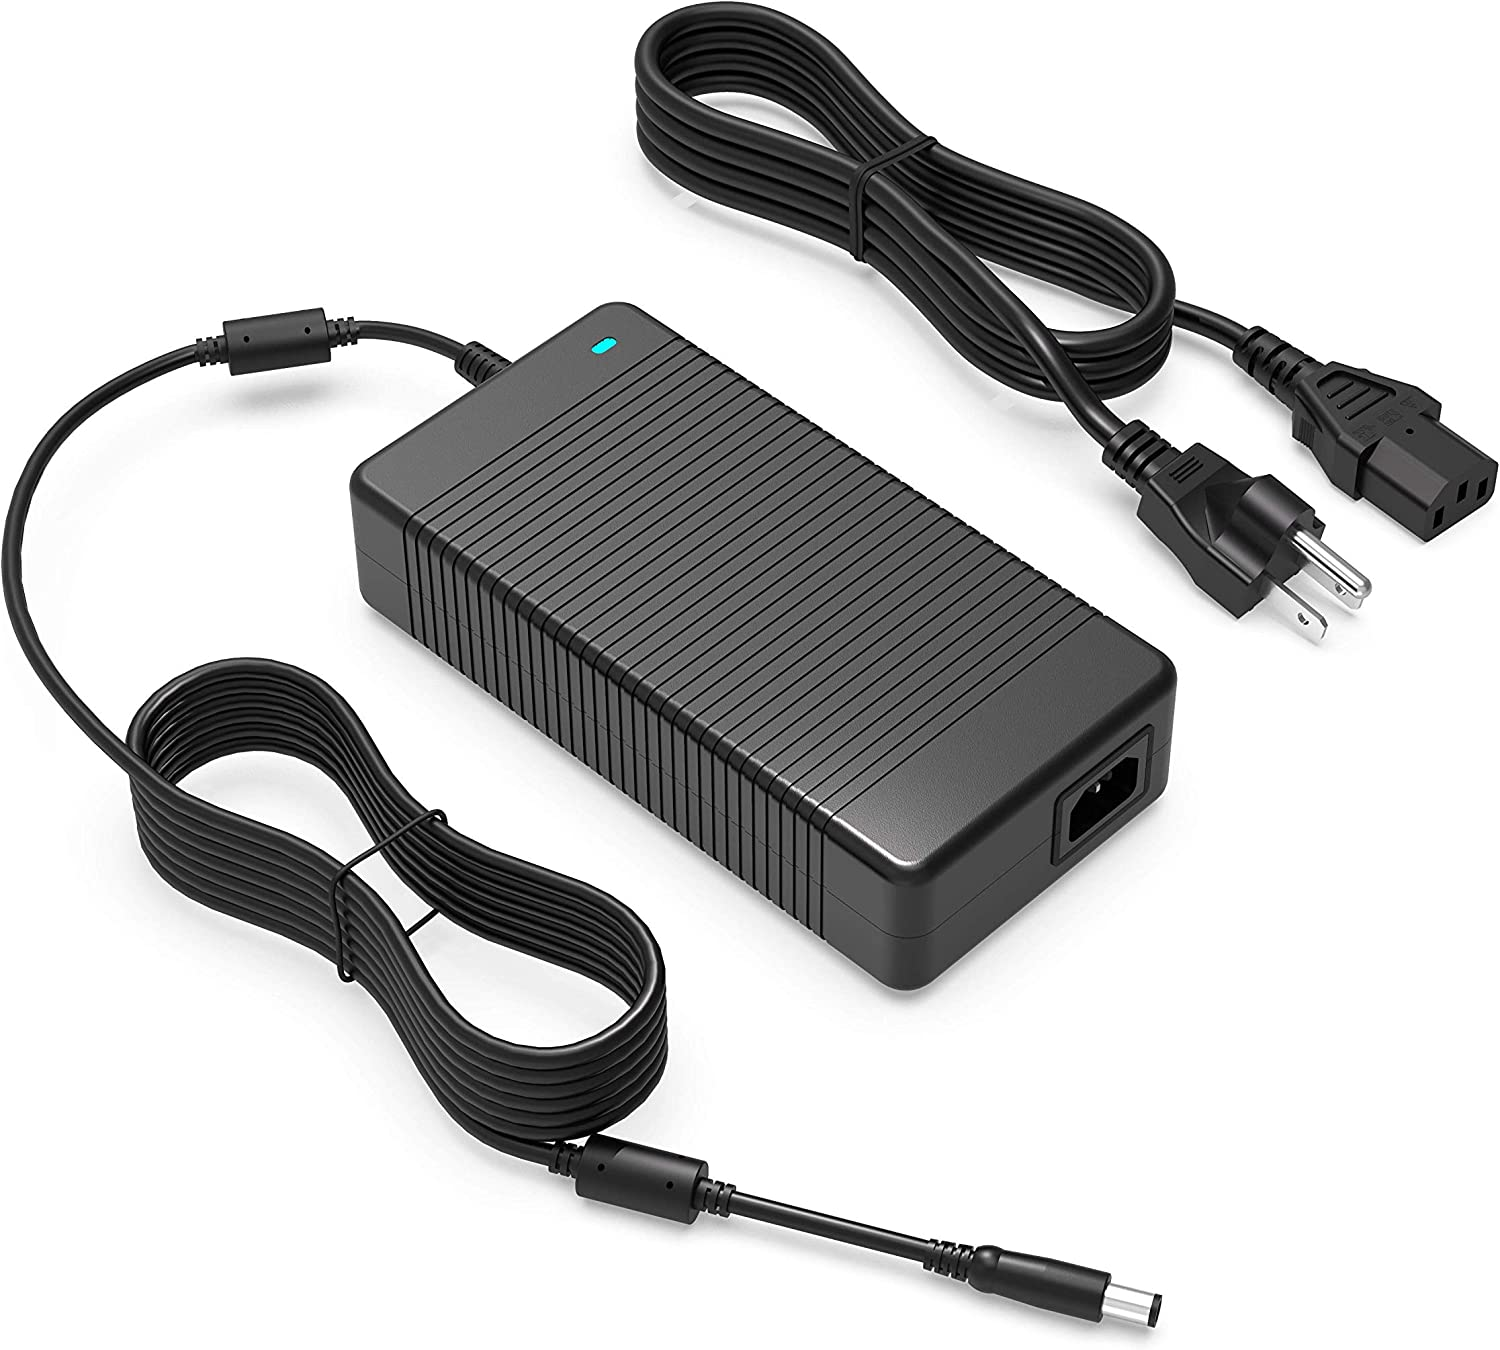 240W 180W AC Adapter Fit for Dell Business Thunderbolt Dock TB16 TB15 TB18DC K16A,PerFit Formance Dock WD19DC K20A,E-Port Replicator Charger Power Supply Cord